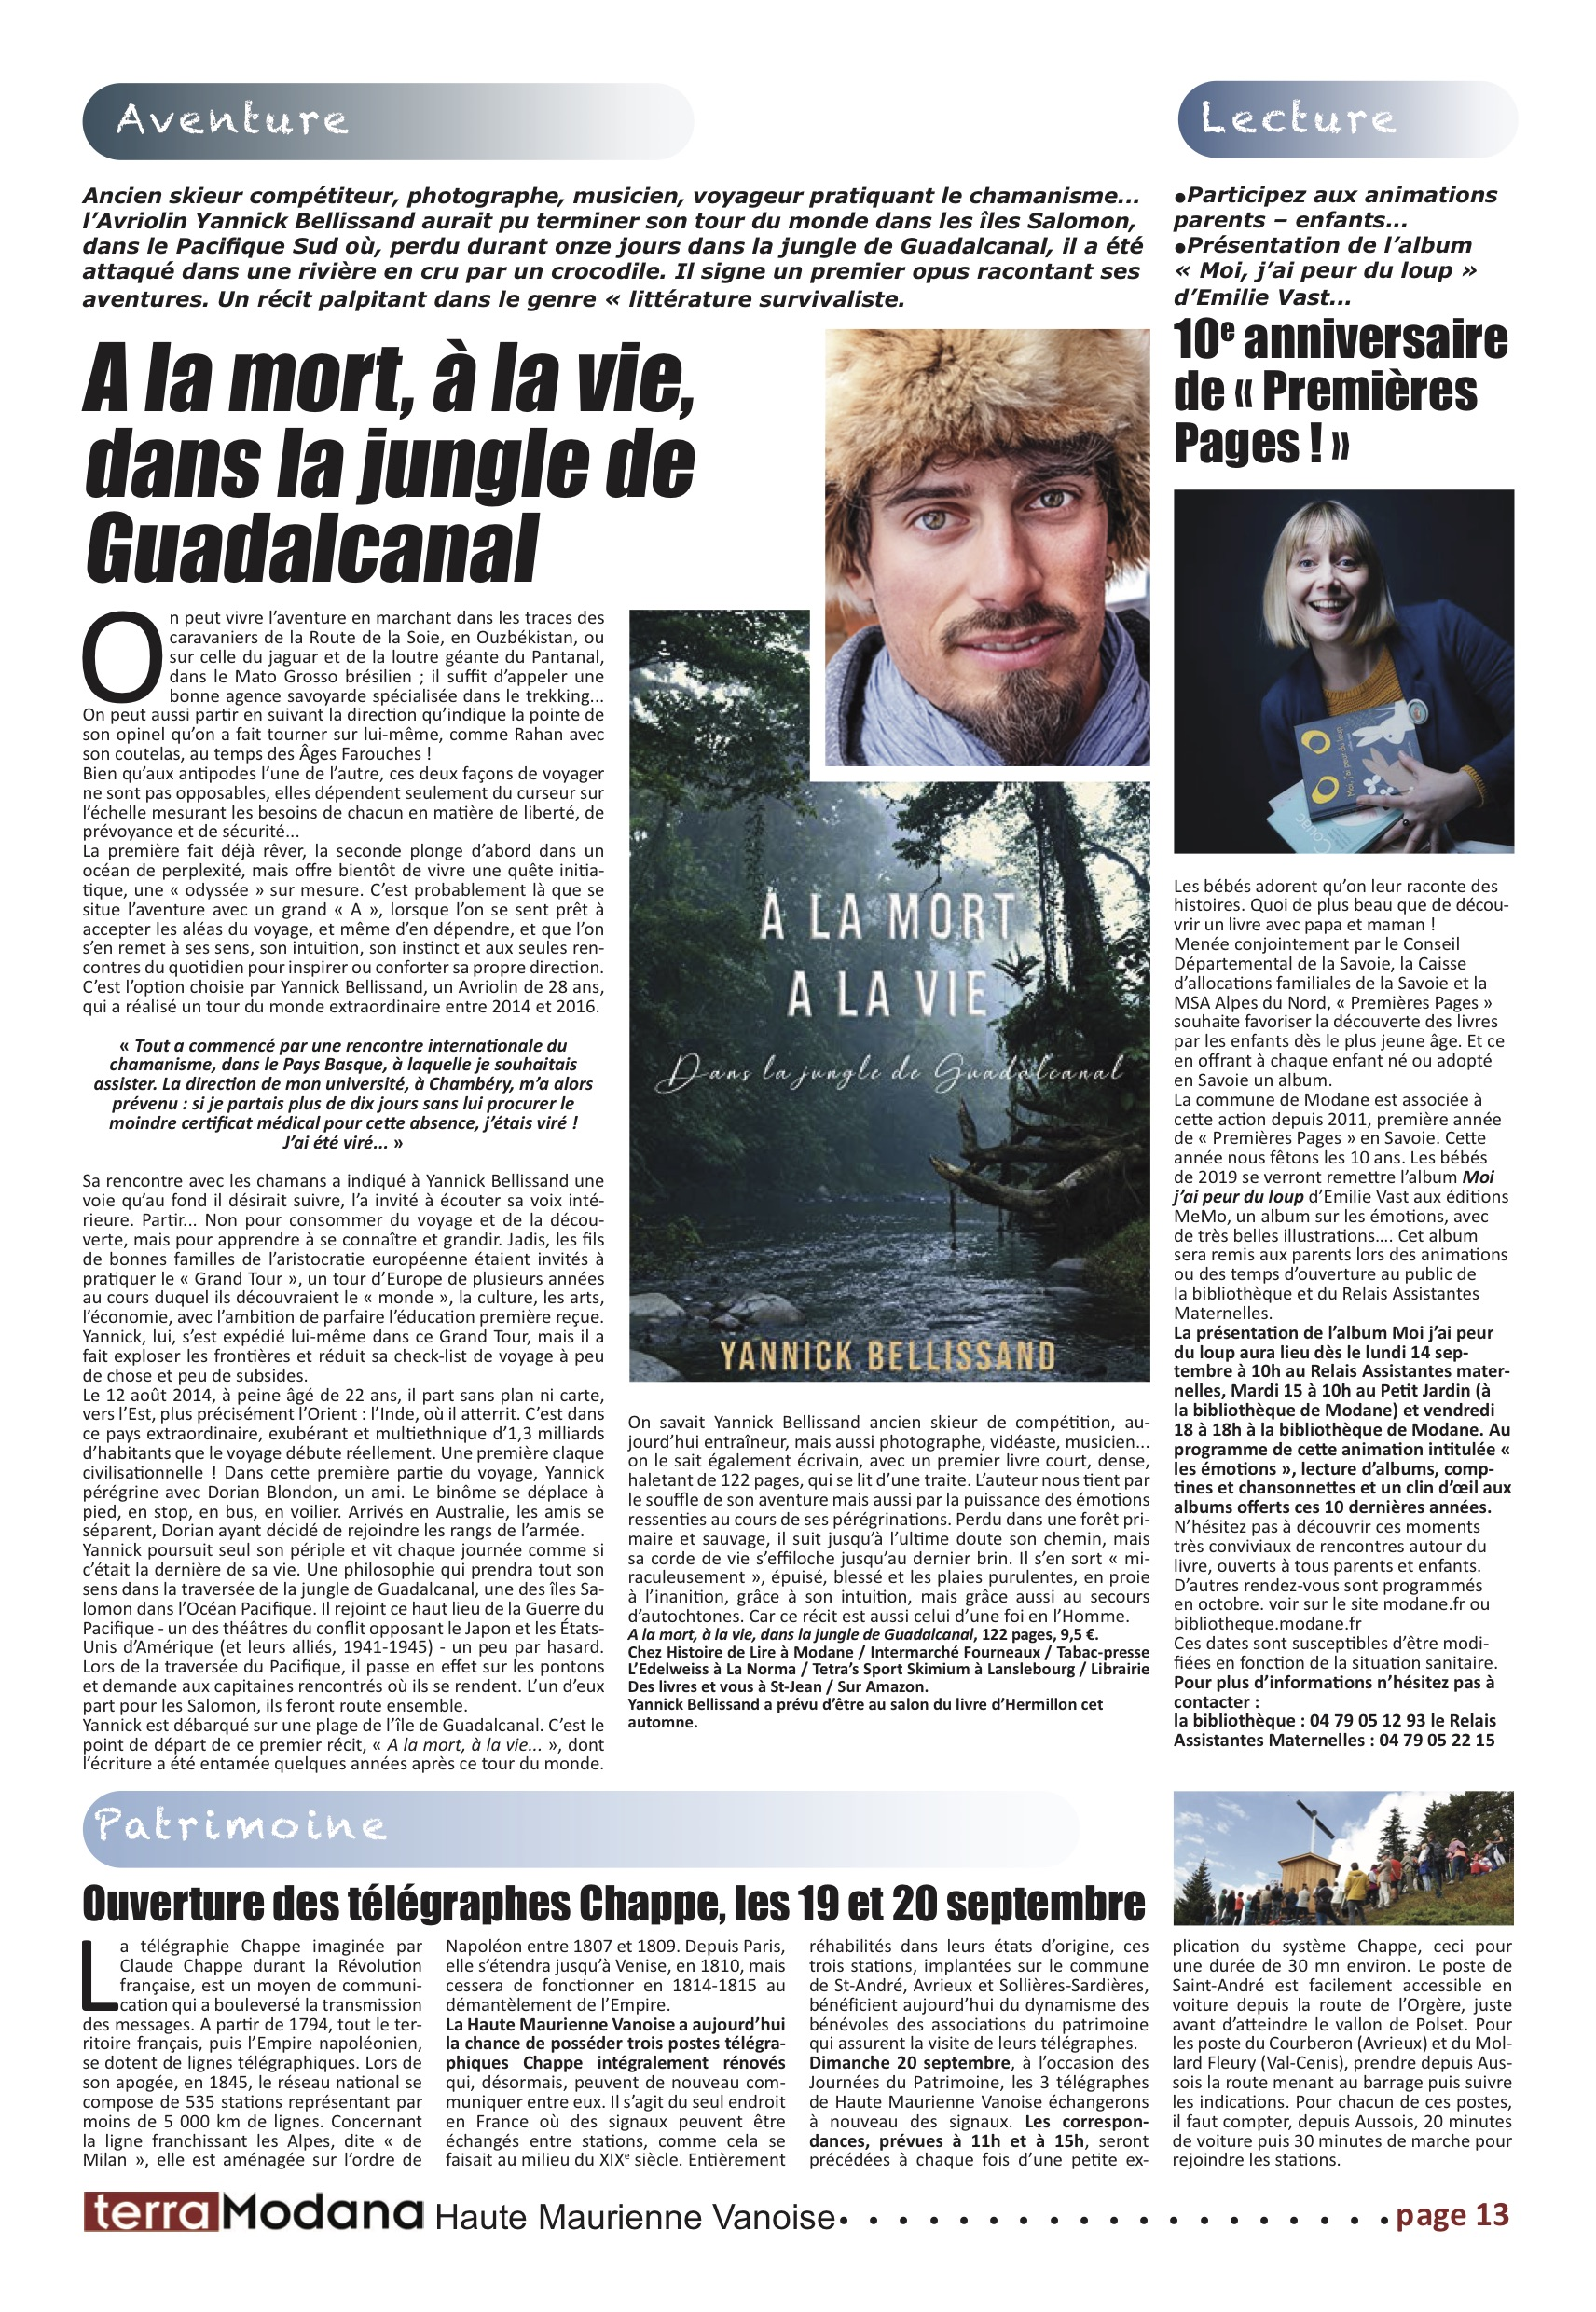 Article Terra Modana